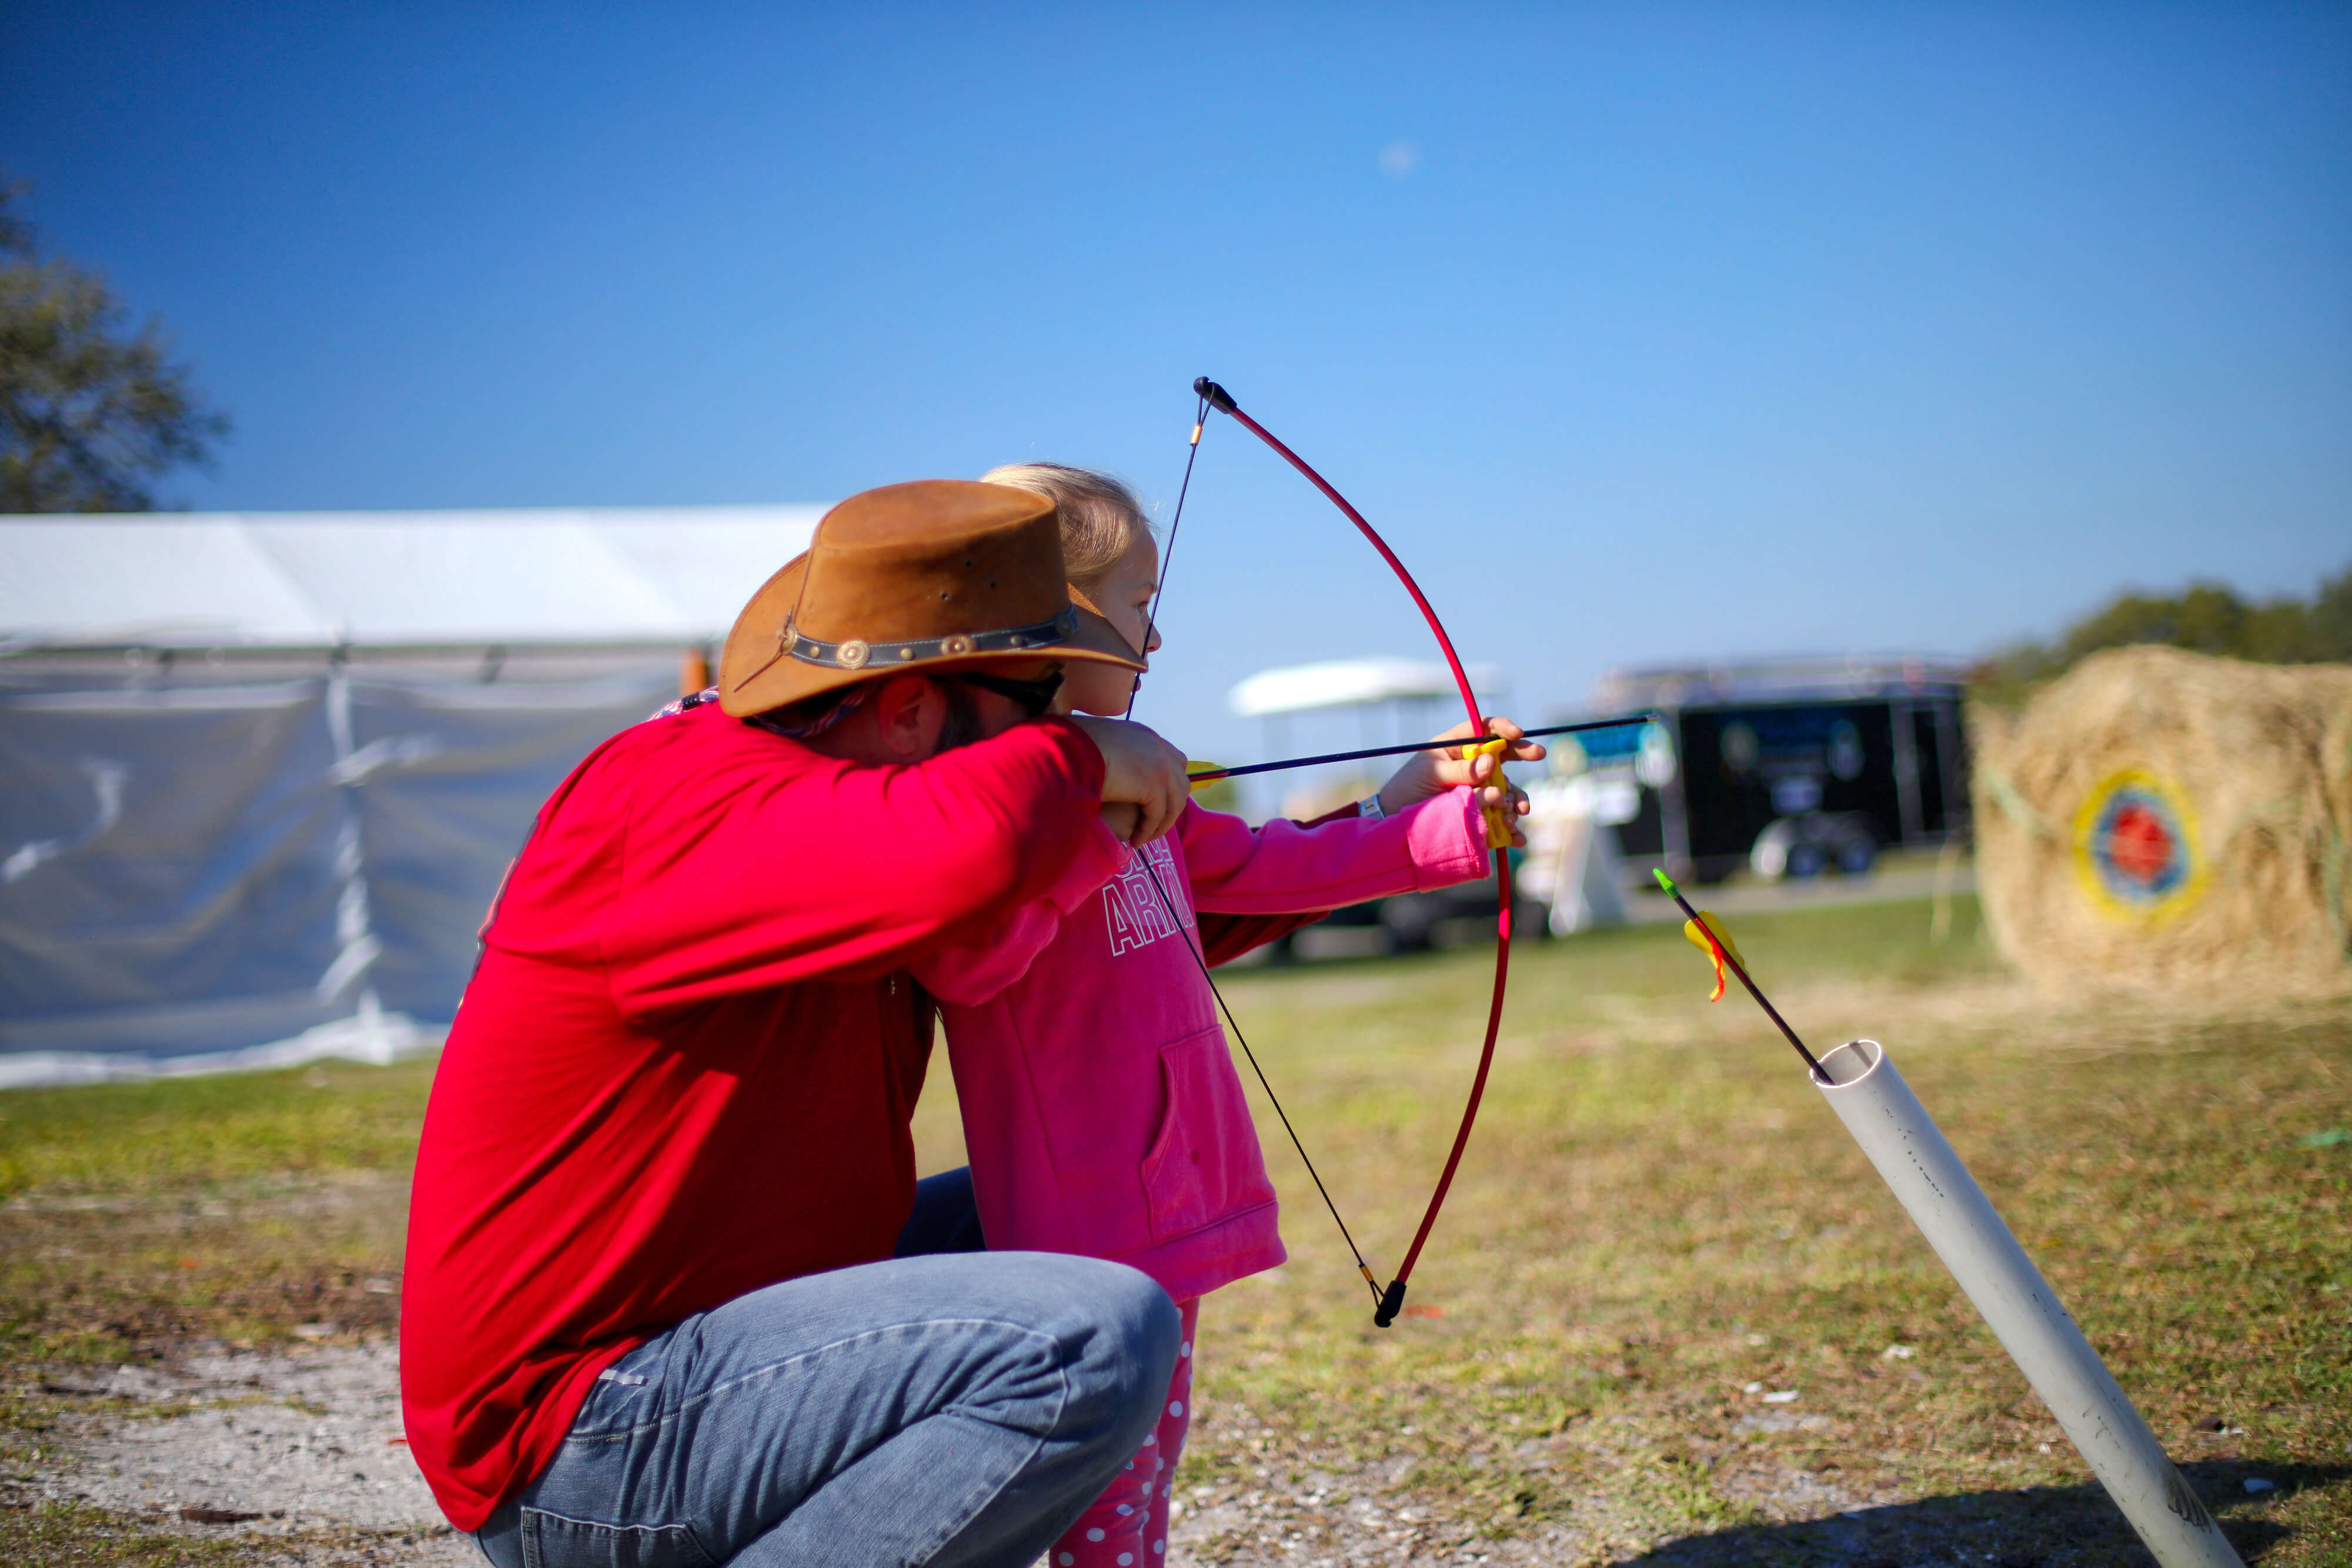 Archery near Orlando, FL |  Westgate River Ranch Resort & Rodeo | Westgate Resorts